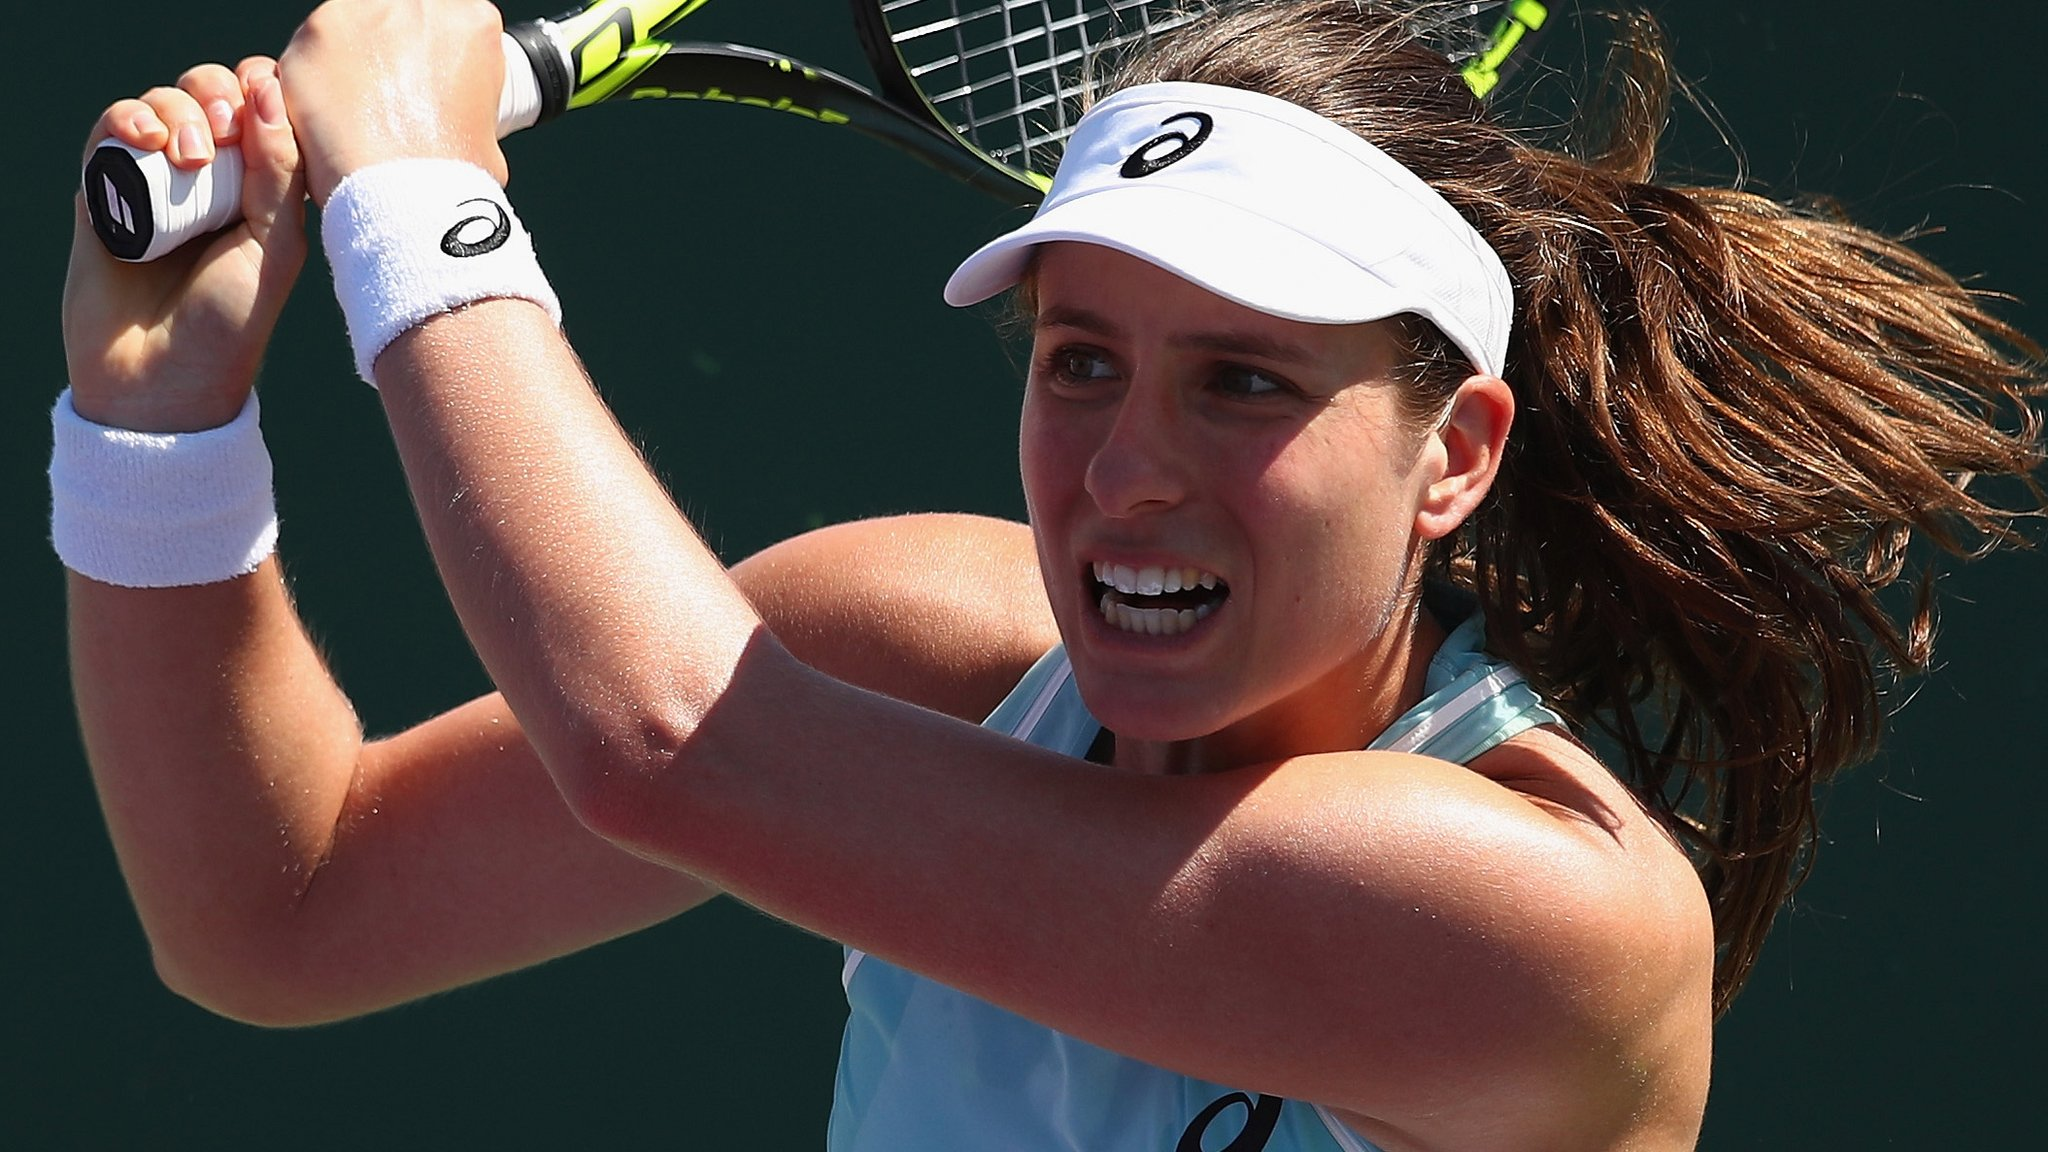 Miami Open: Johanna Konta beats Kirsten Flipkens in second round